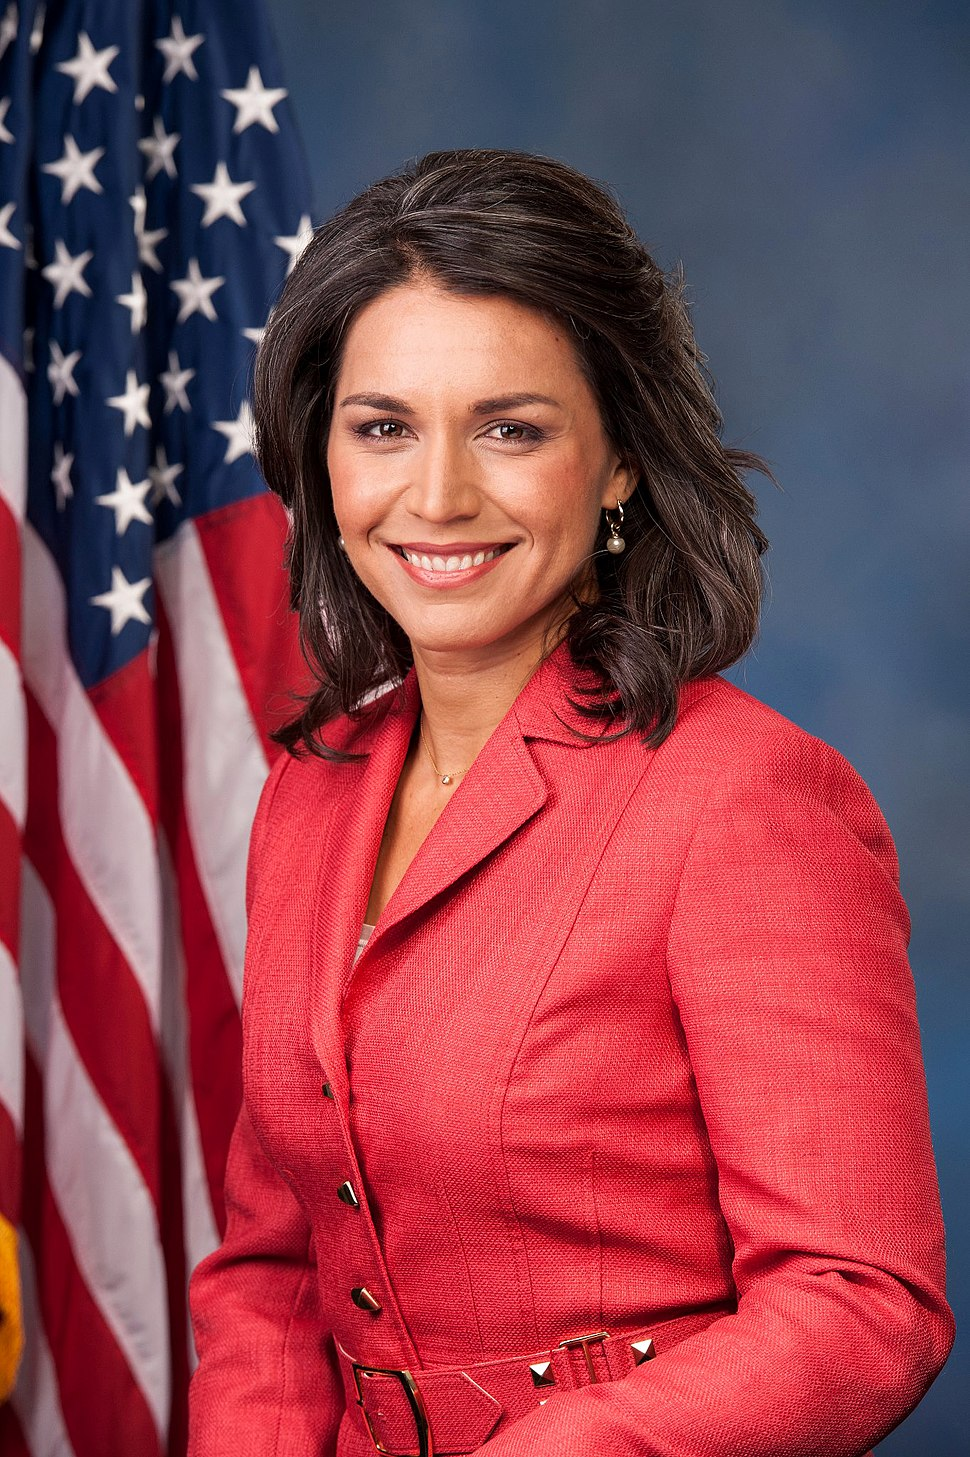 Official 114th Congressional photograph of Tulsi Gabbard